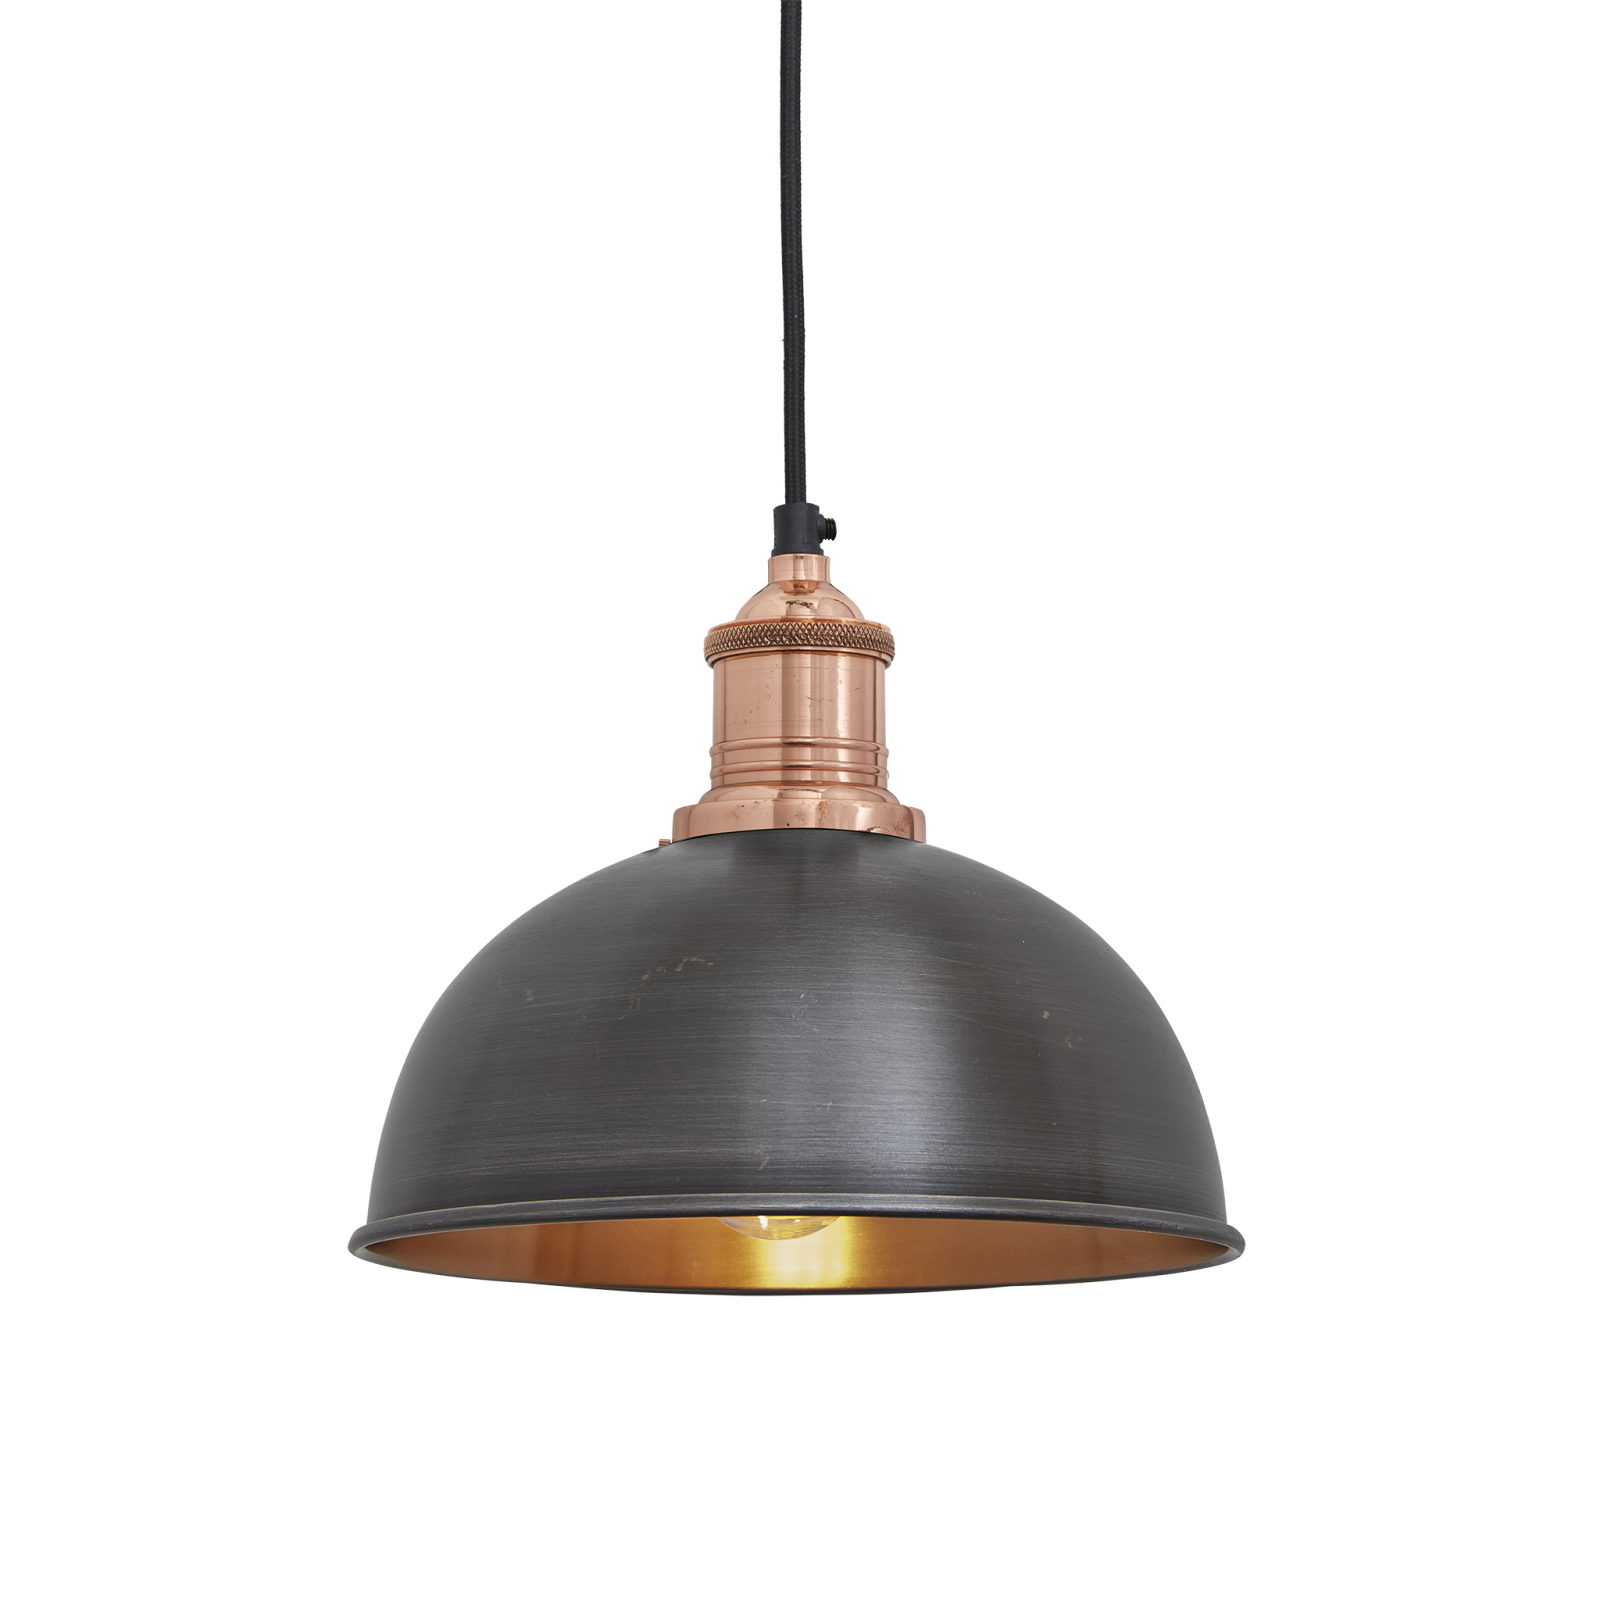 Brooklyn Dome Pendant Light - 8 Inch Brooklyn Dome Pendant - 8 Inch - Pewter & Copper - Copper Holde